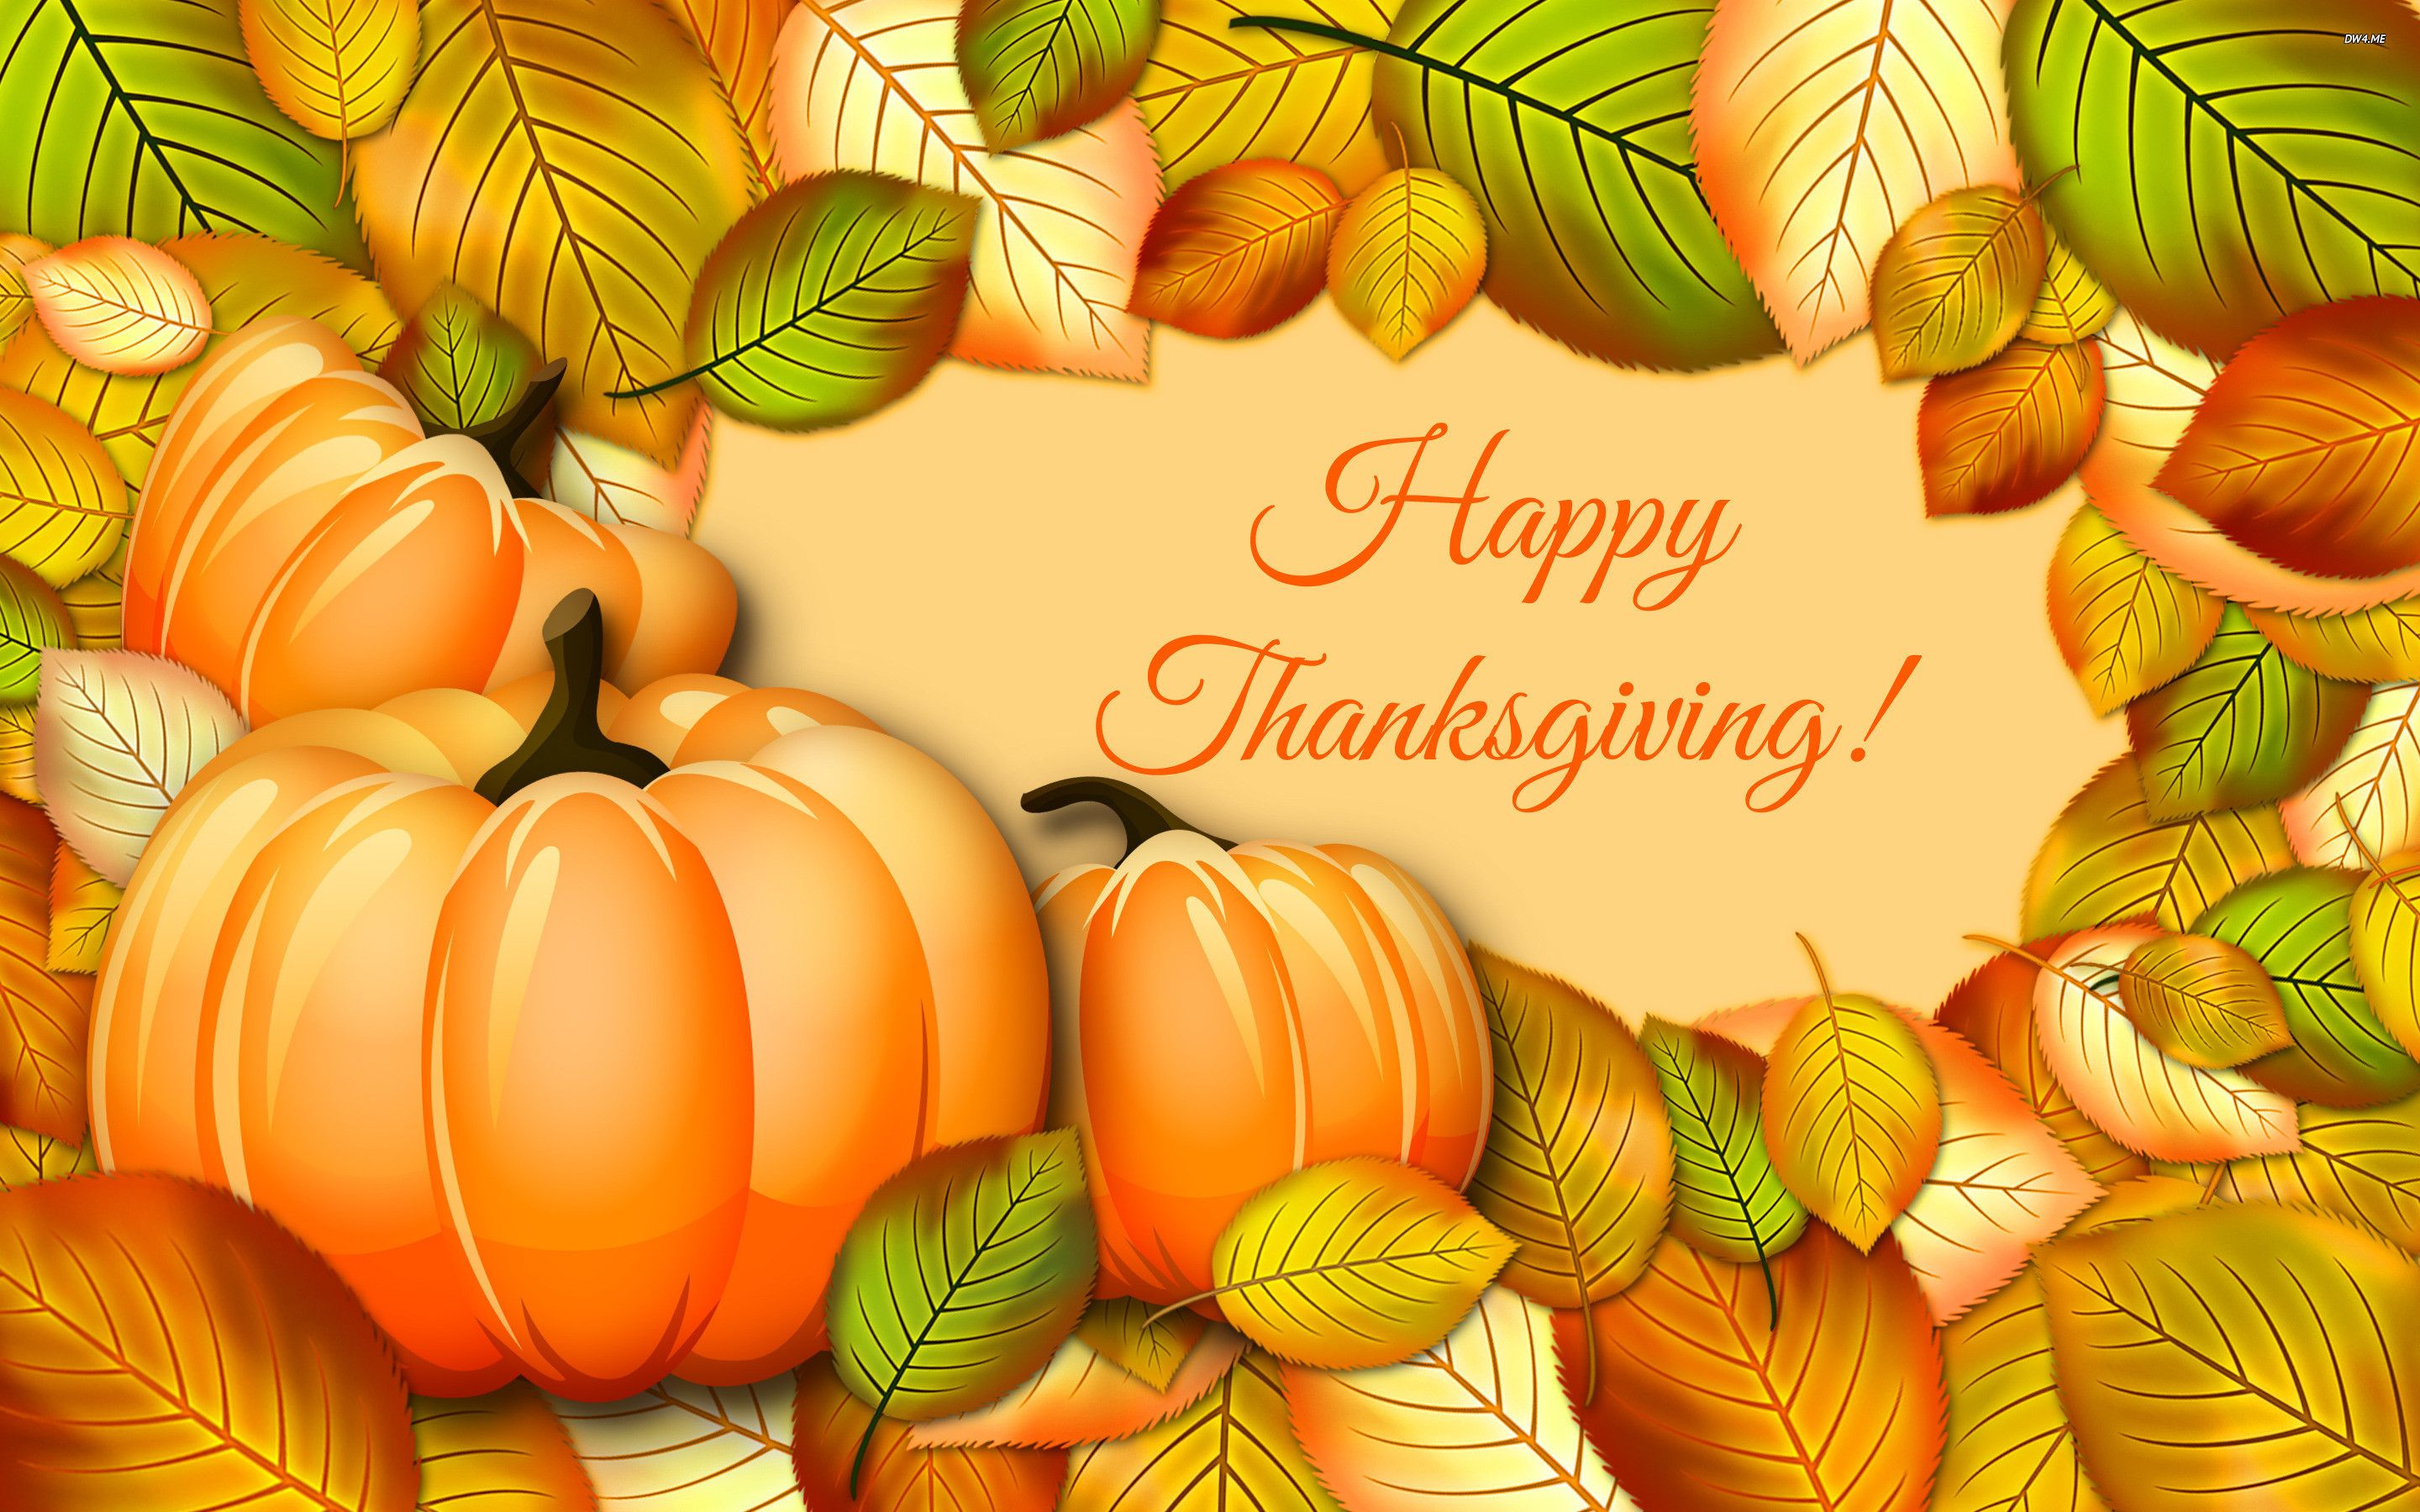 HD Thanksgiving Wallpapers wallpapers 2020